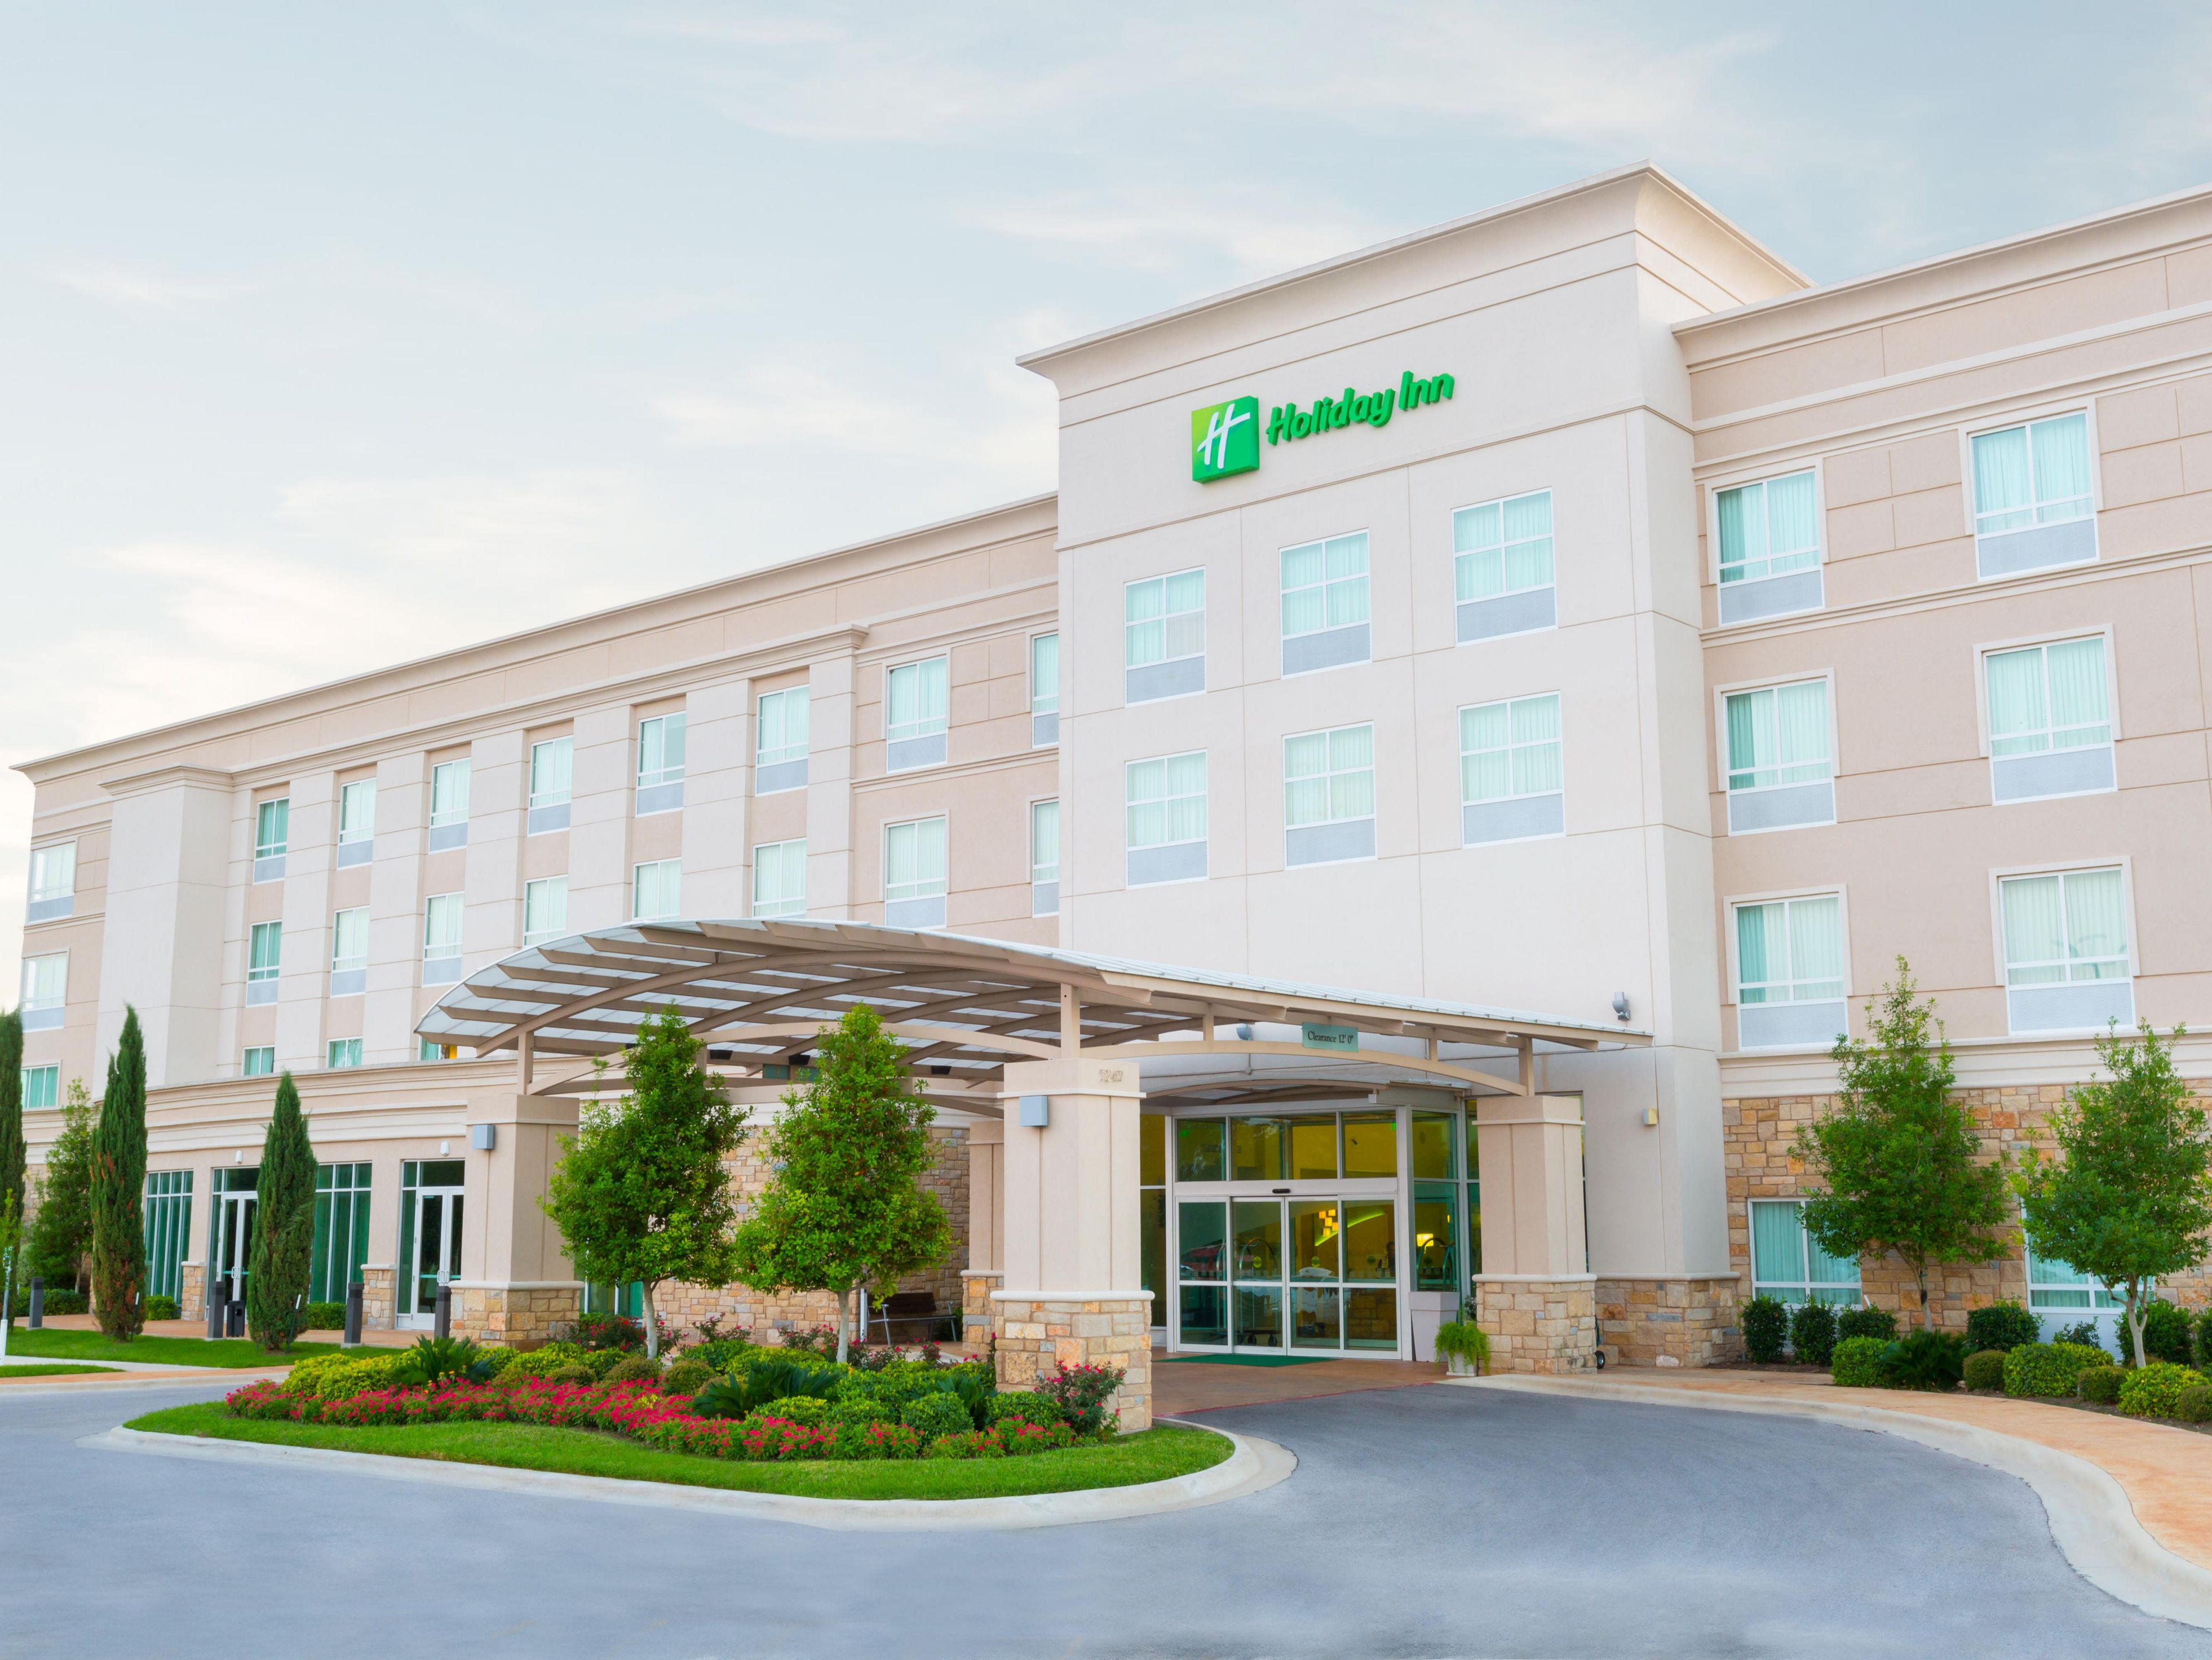 Holiday Inn Express Killeen Hotels | Budget Hotels in